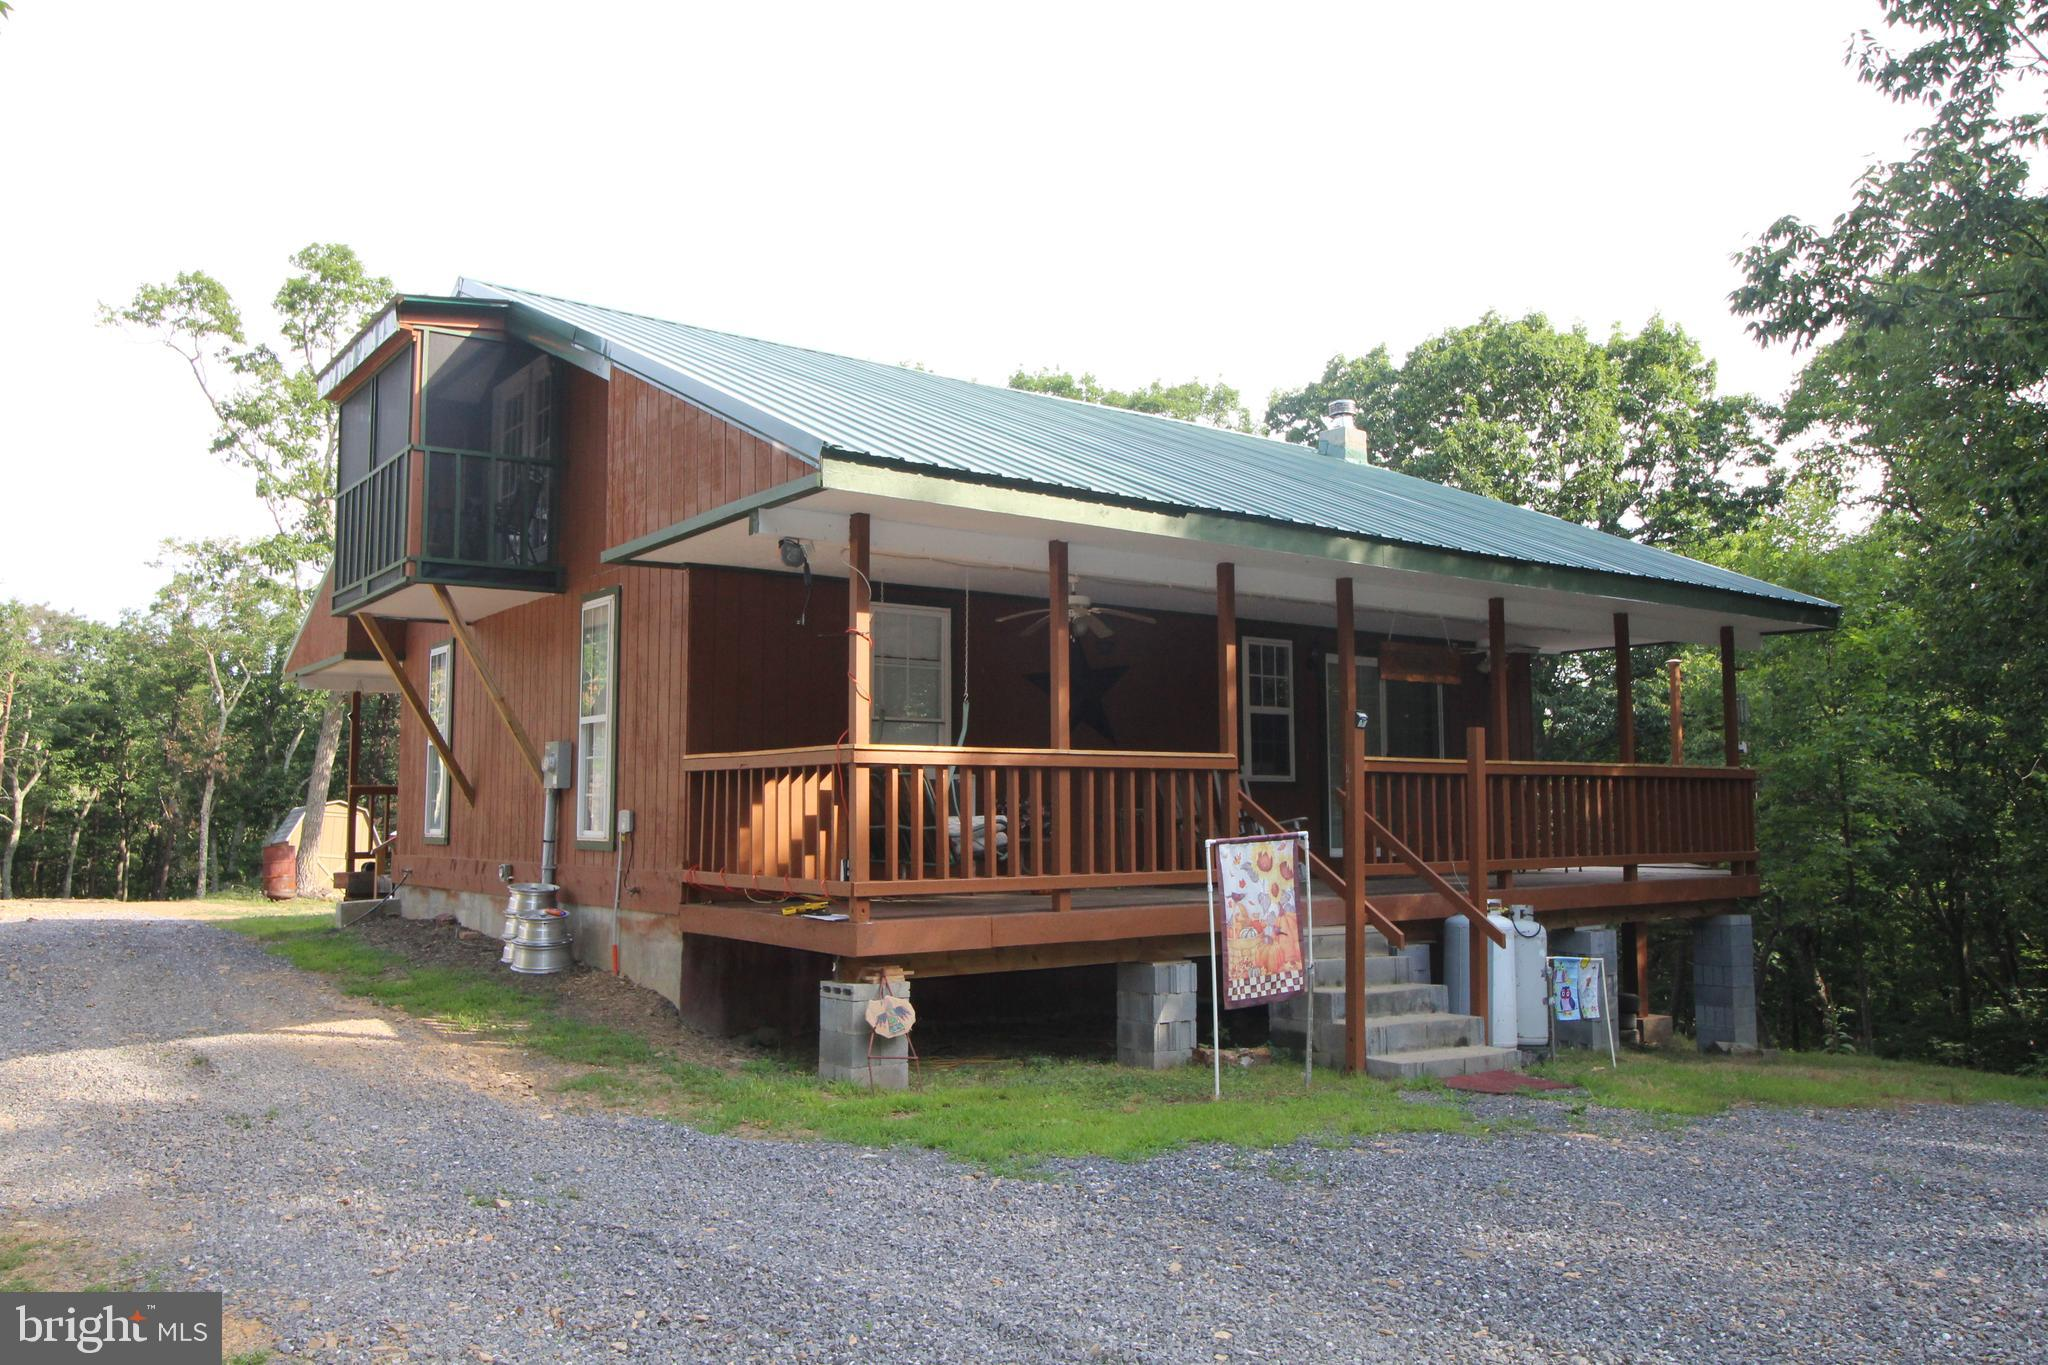 555 YELLOW PINE DRIVE, WARDENSVILLE, WV 26851